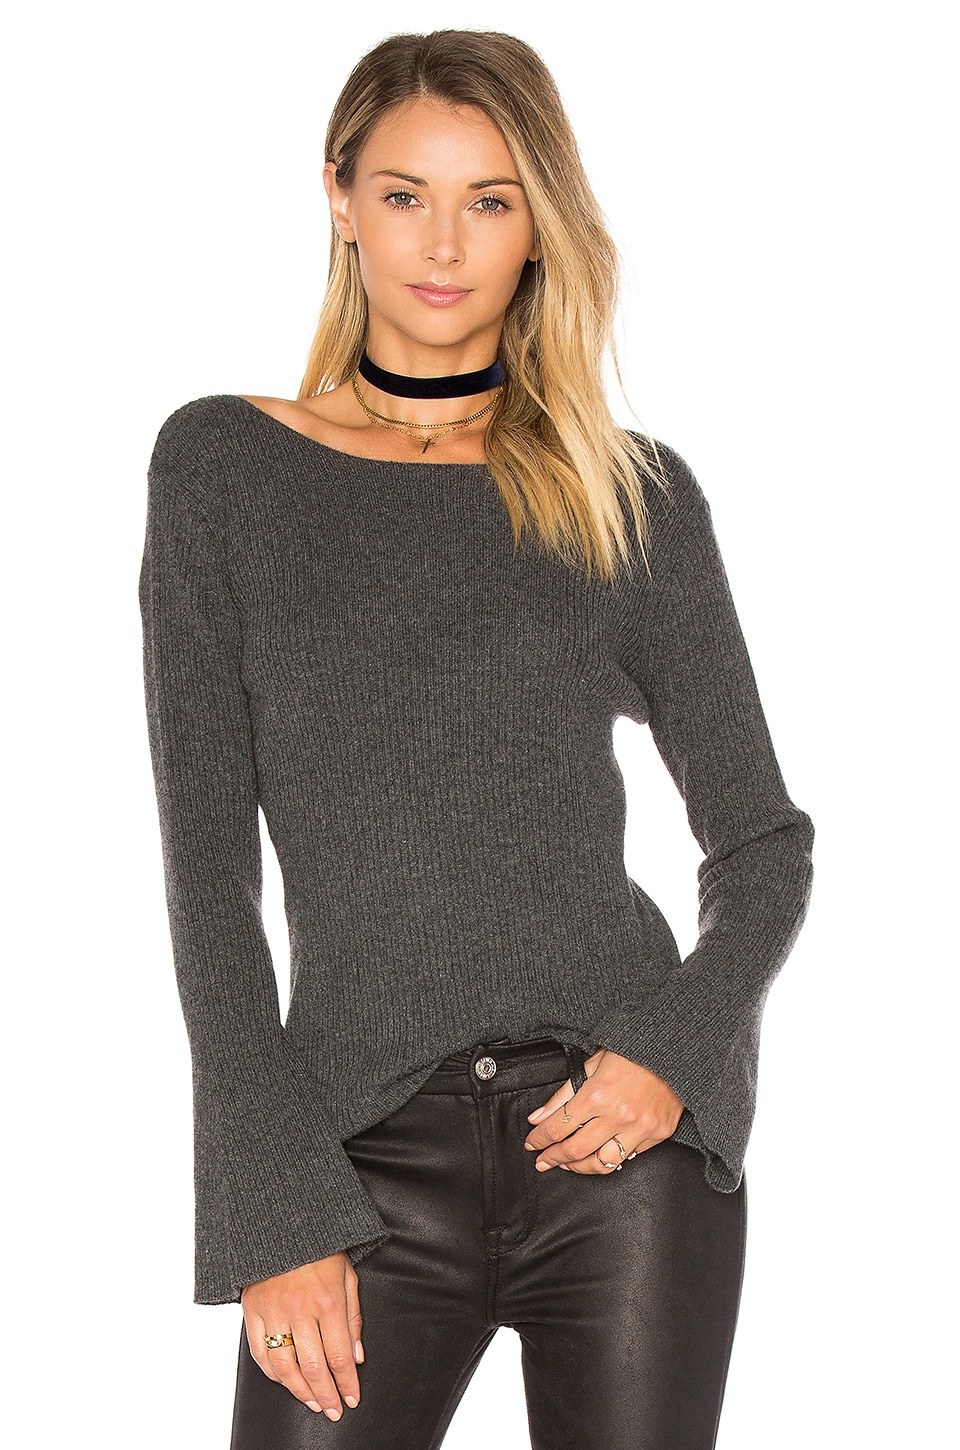 Salzburg Pullover Sweater by Central Park West